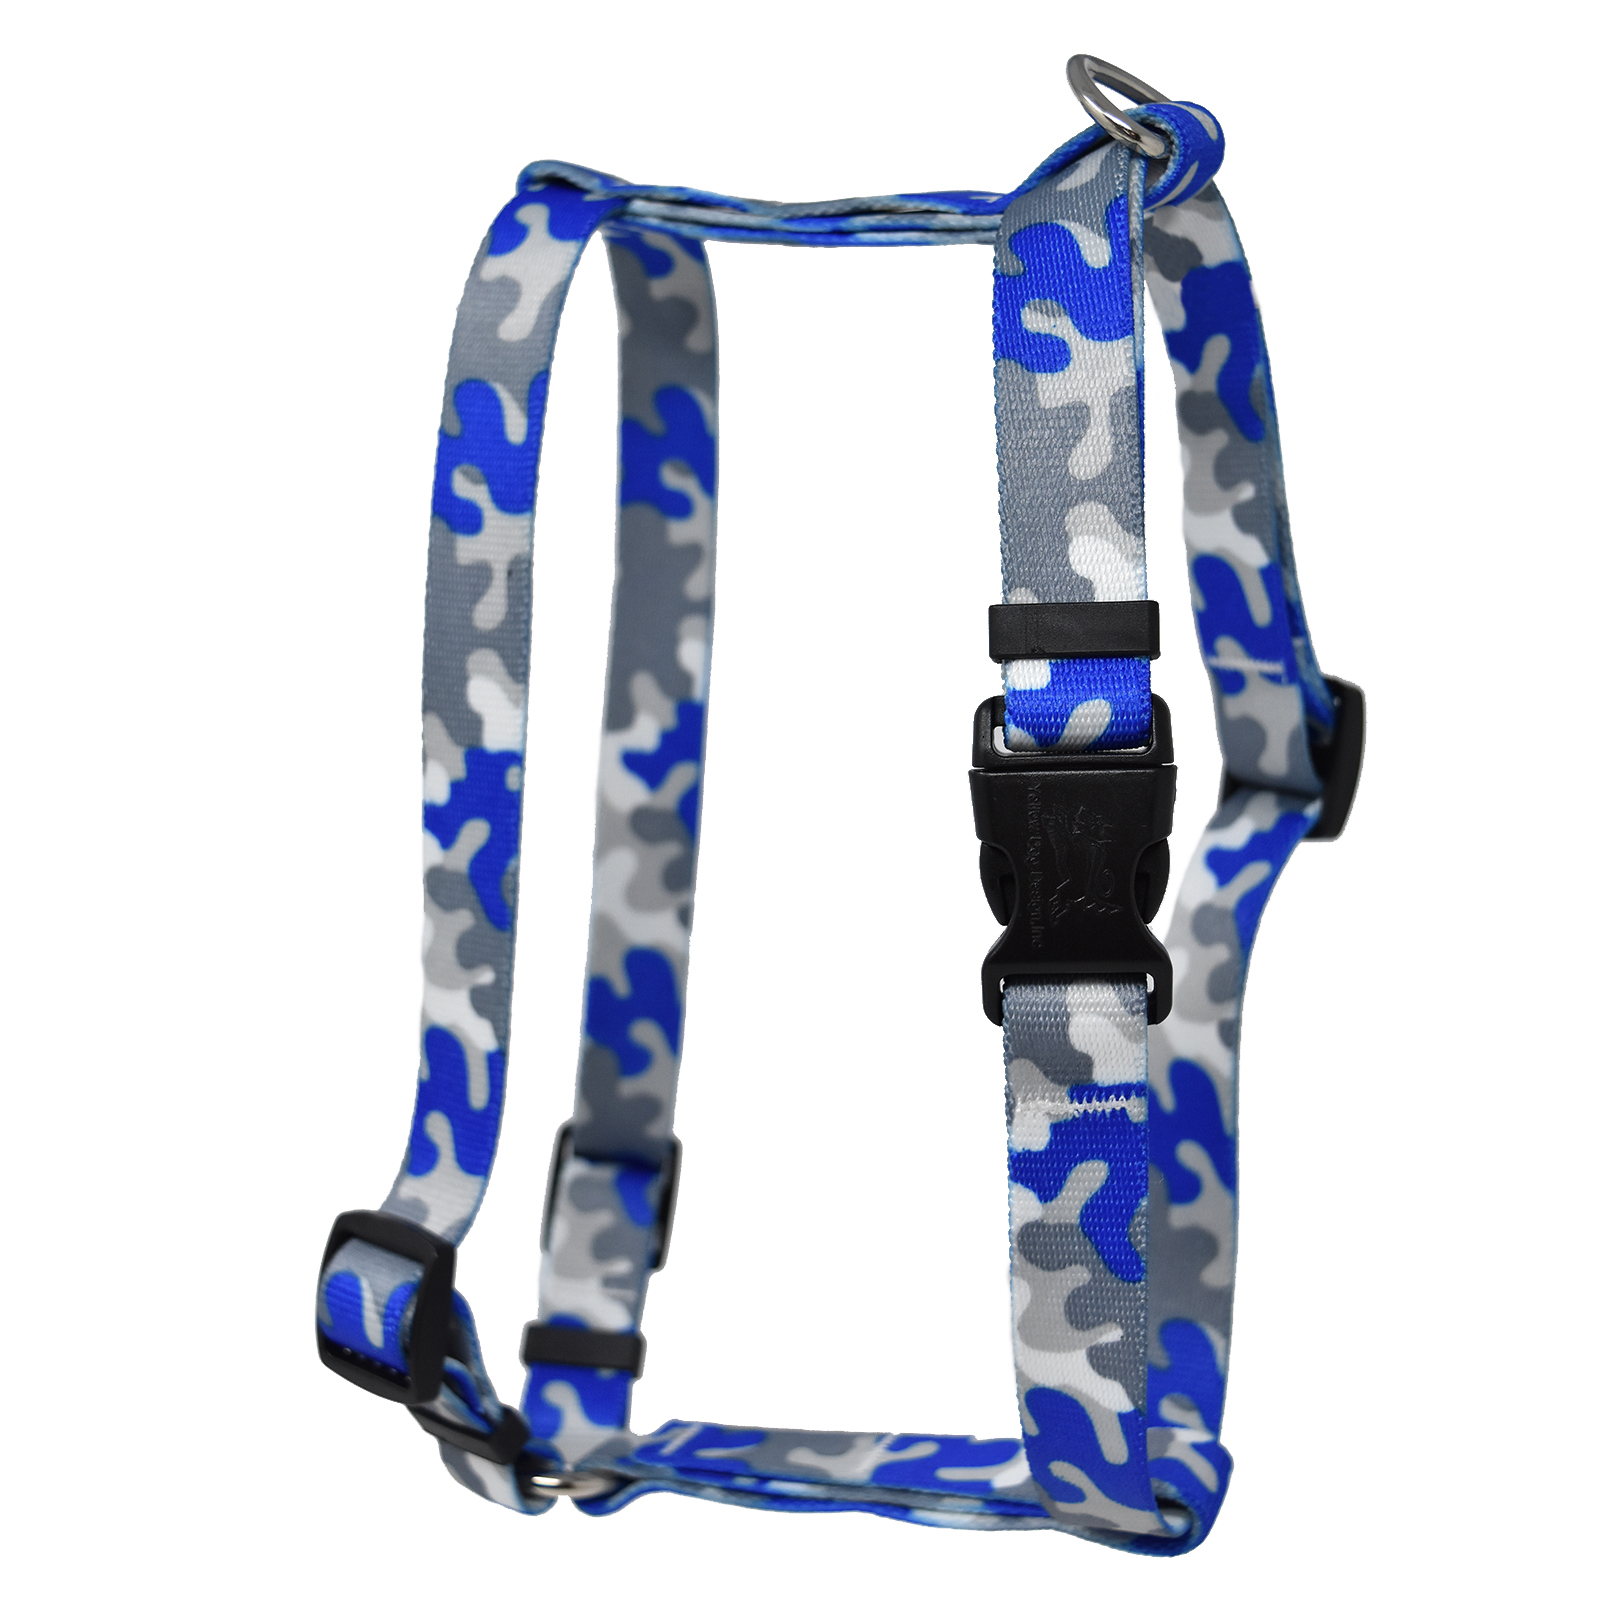 Royal Blue & Silver Camo Roman H Harness